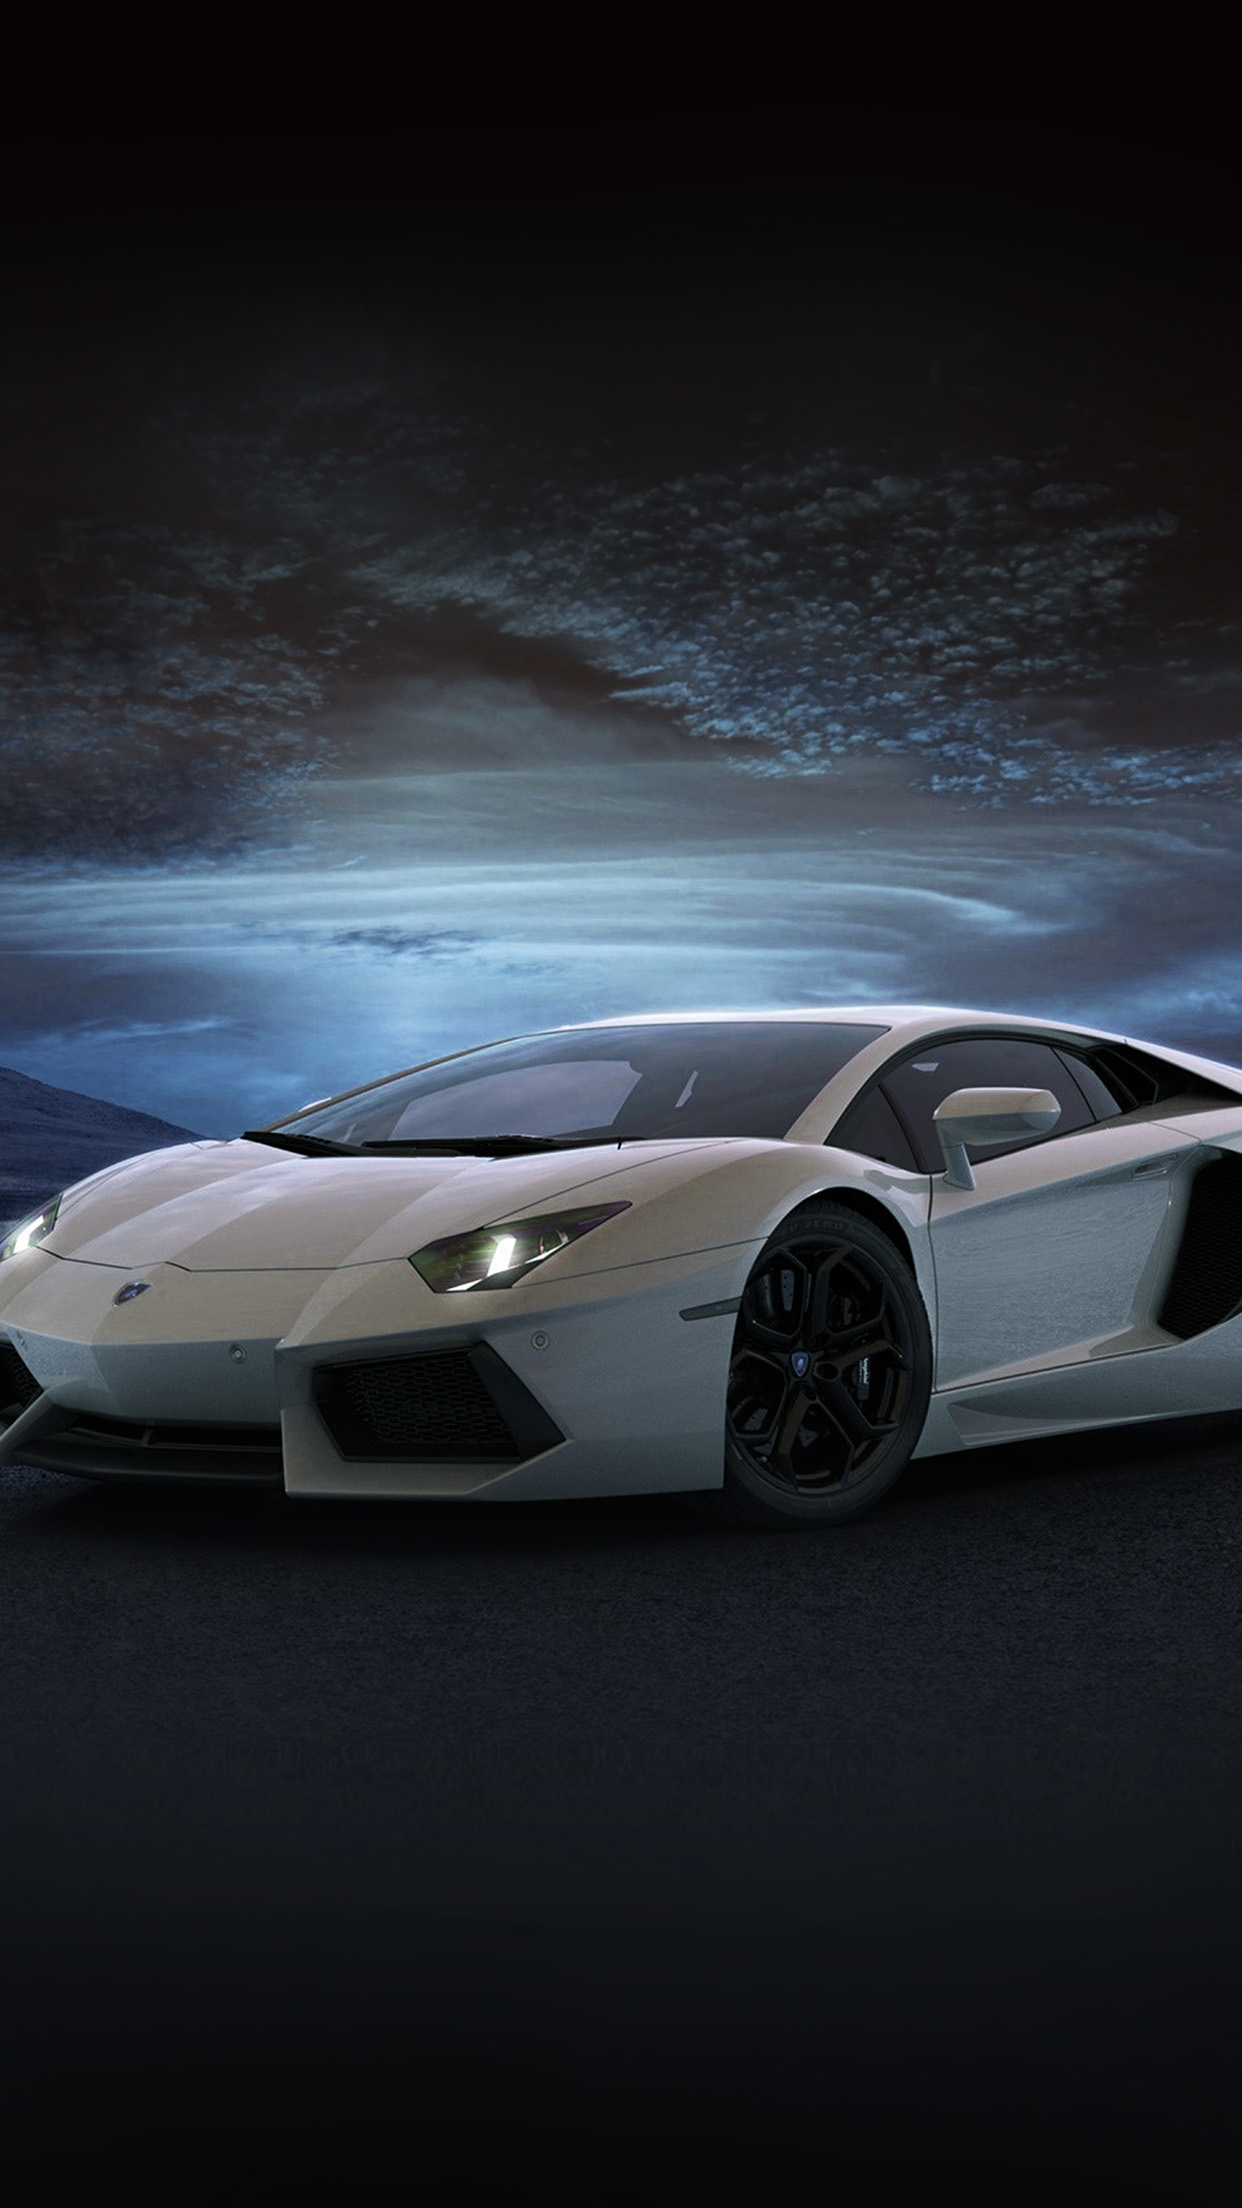 Iphonepapers Com Iphone 8 Wallpaper An42 Lamborghini Car Exotic